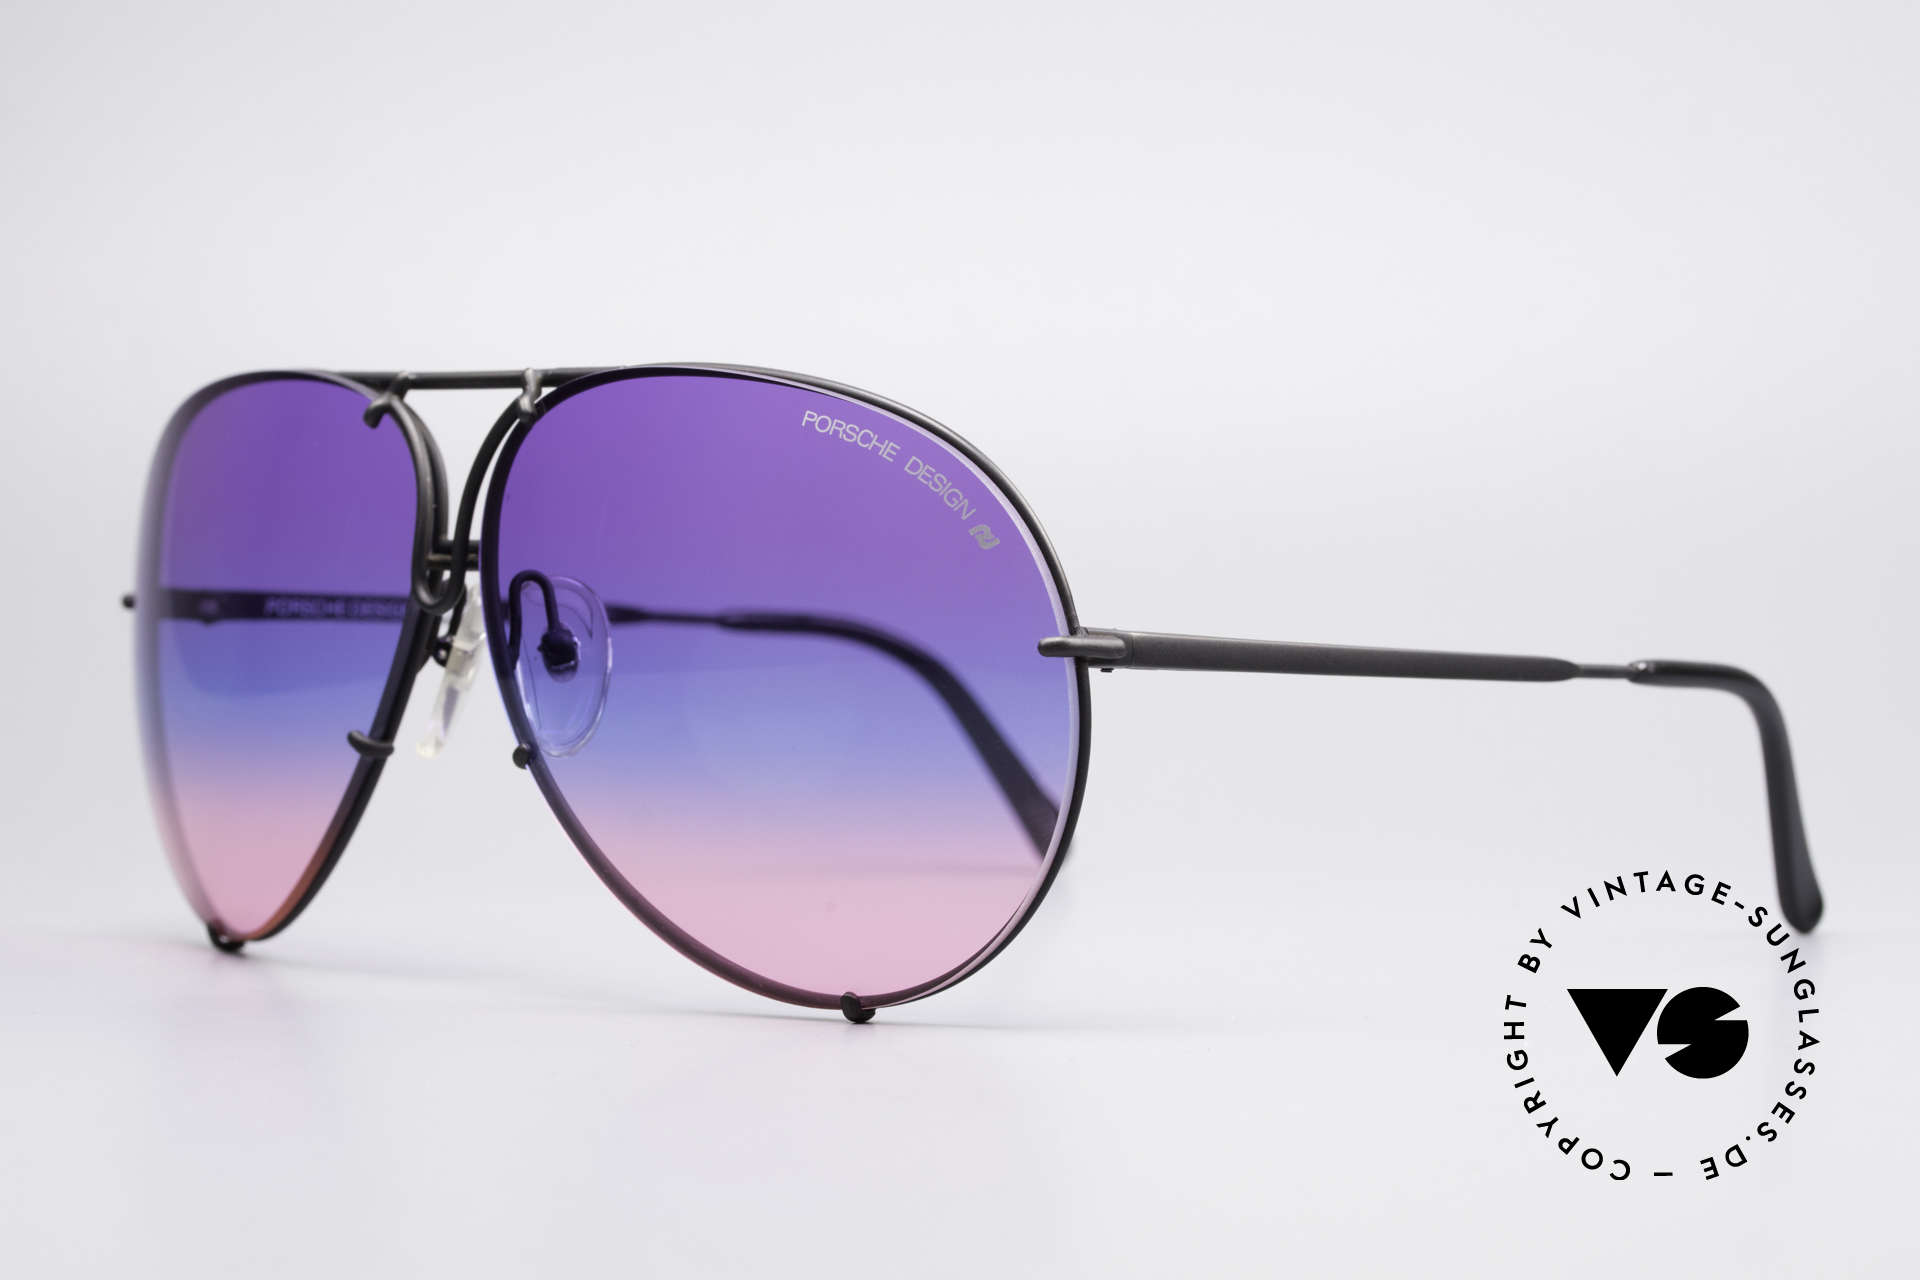 Porsche 5621 Tricolored 80's Aviator Shades, the legend with interchangeable lenses; true vintage, Made for Men